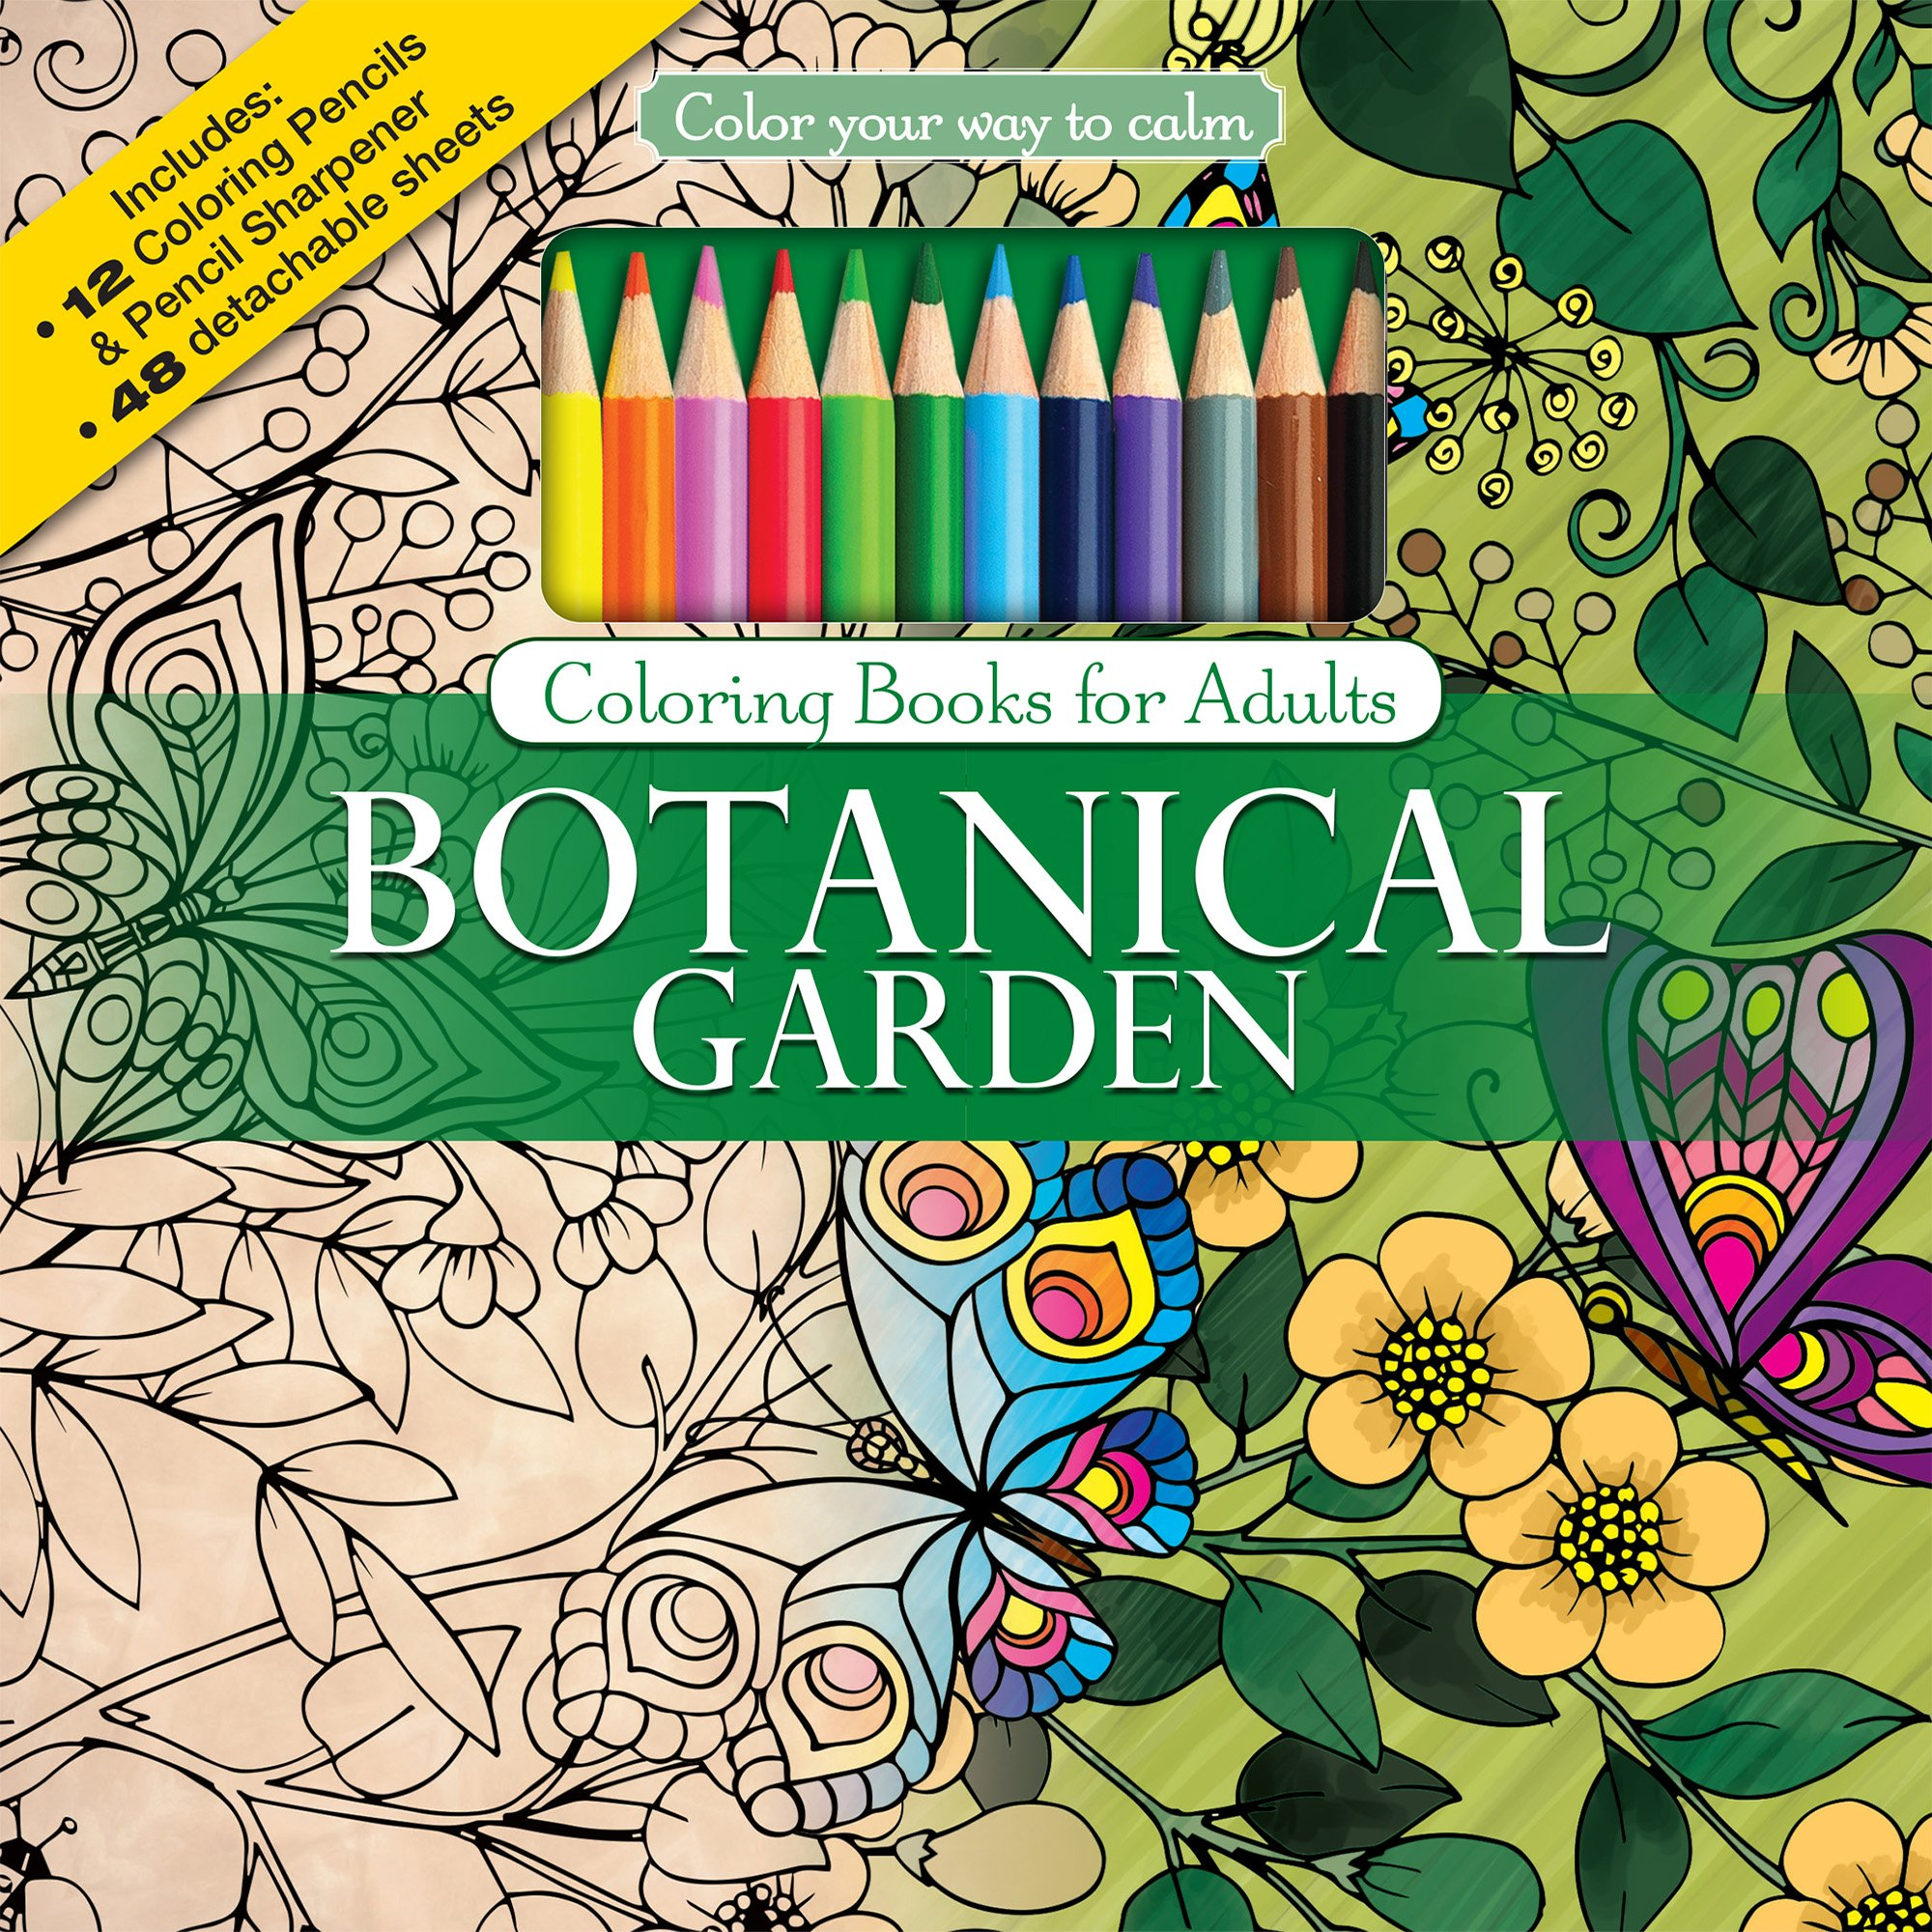 Amazon.com: Botanical Garden Adult Coloring Book Set With 24 Colored ...